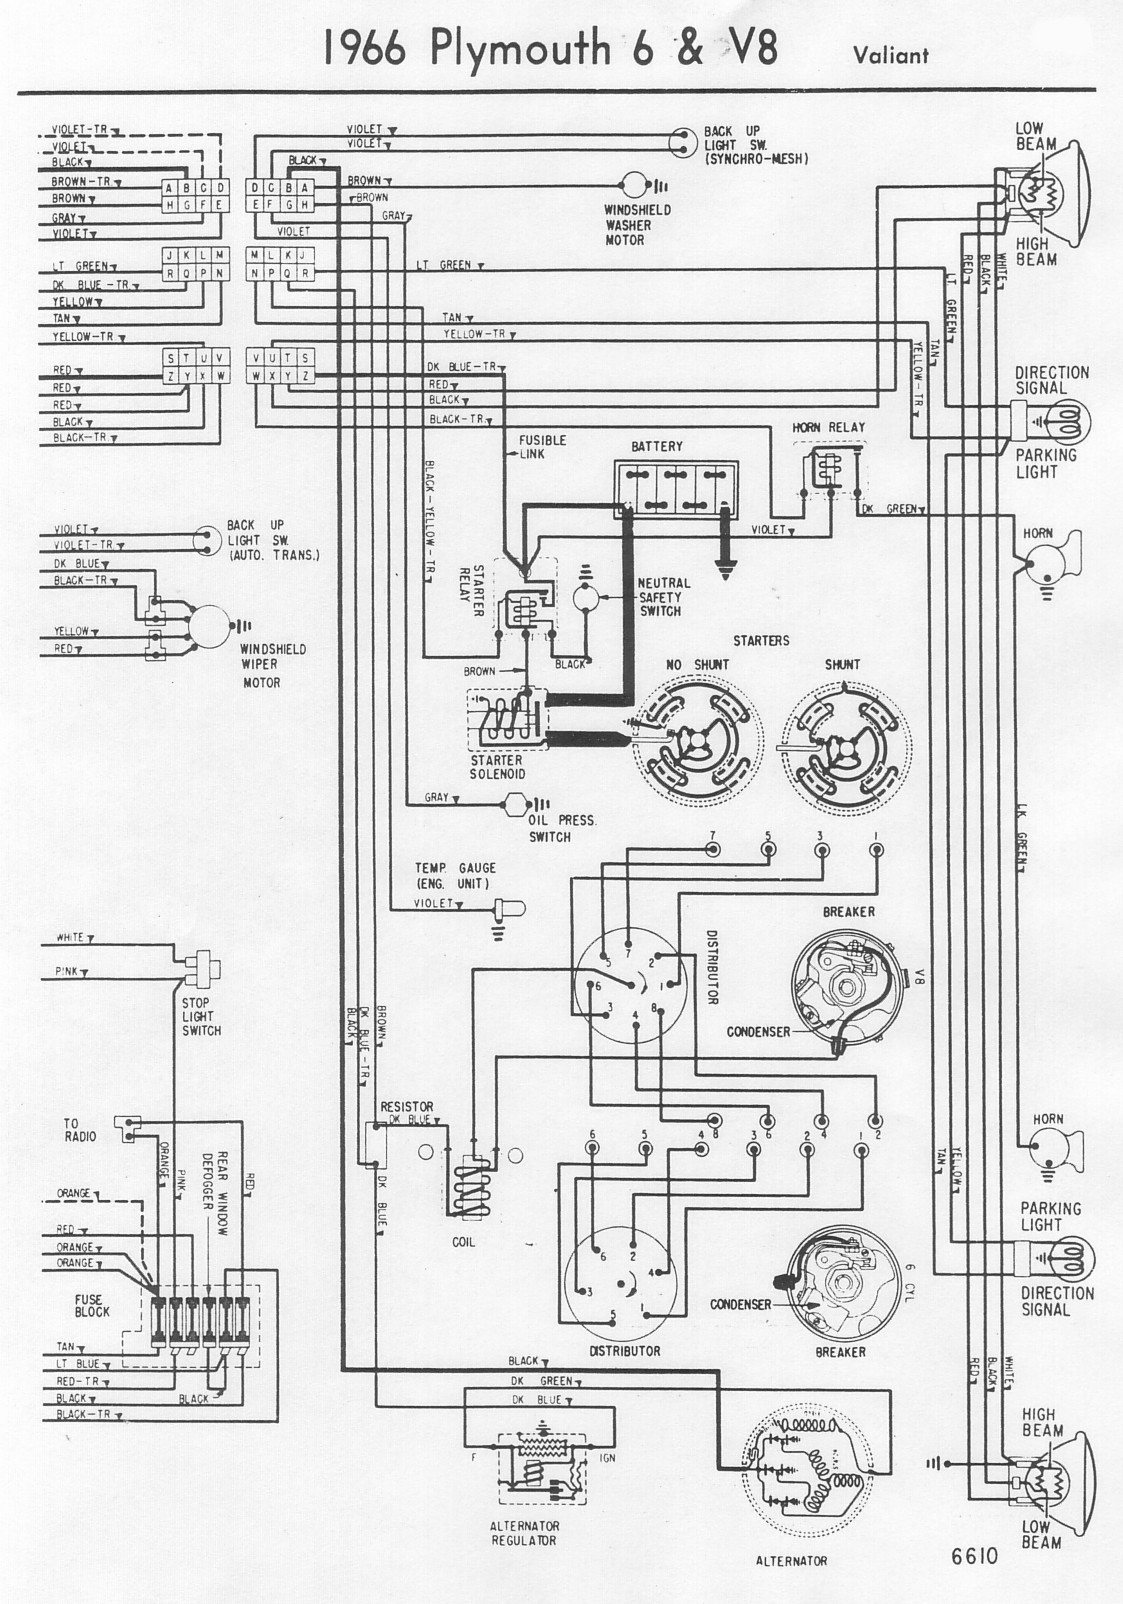 Fantastic Wiring Diagram For 280z V8 Collection - Wiring Diagram ...